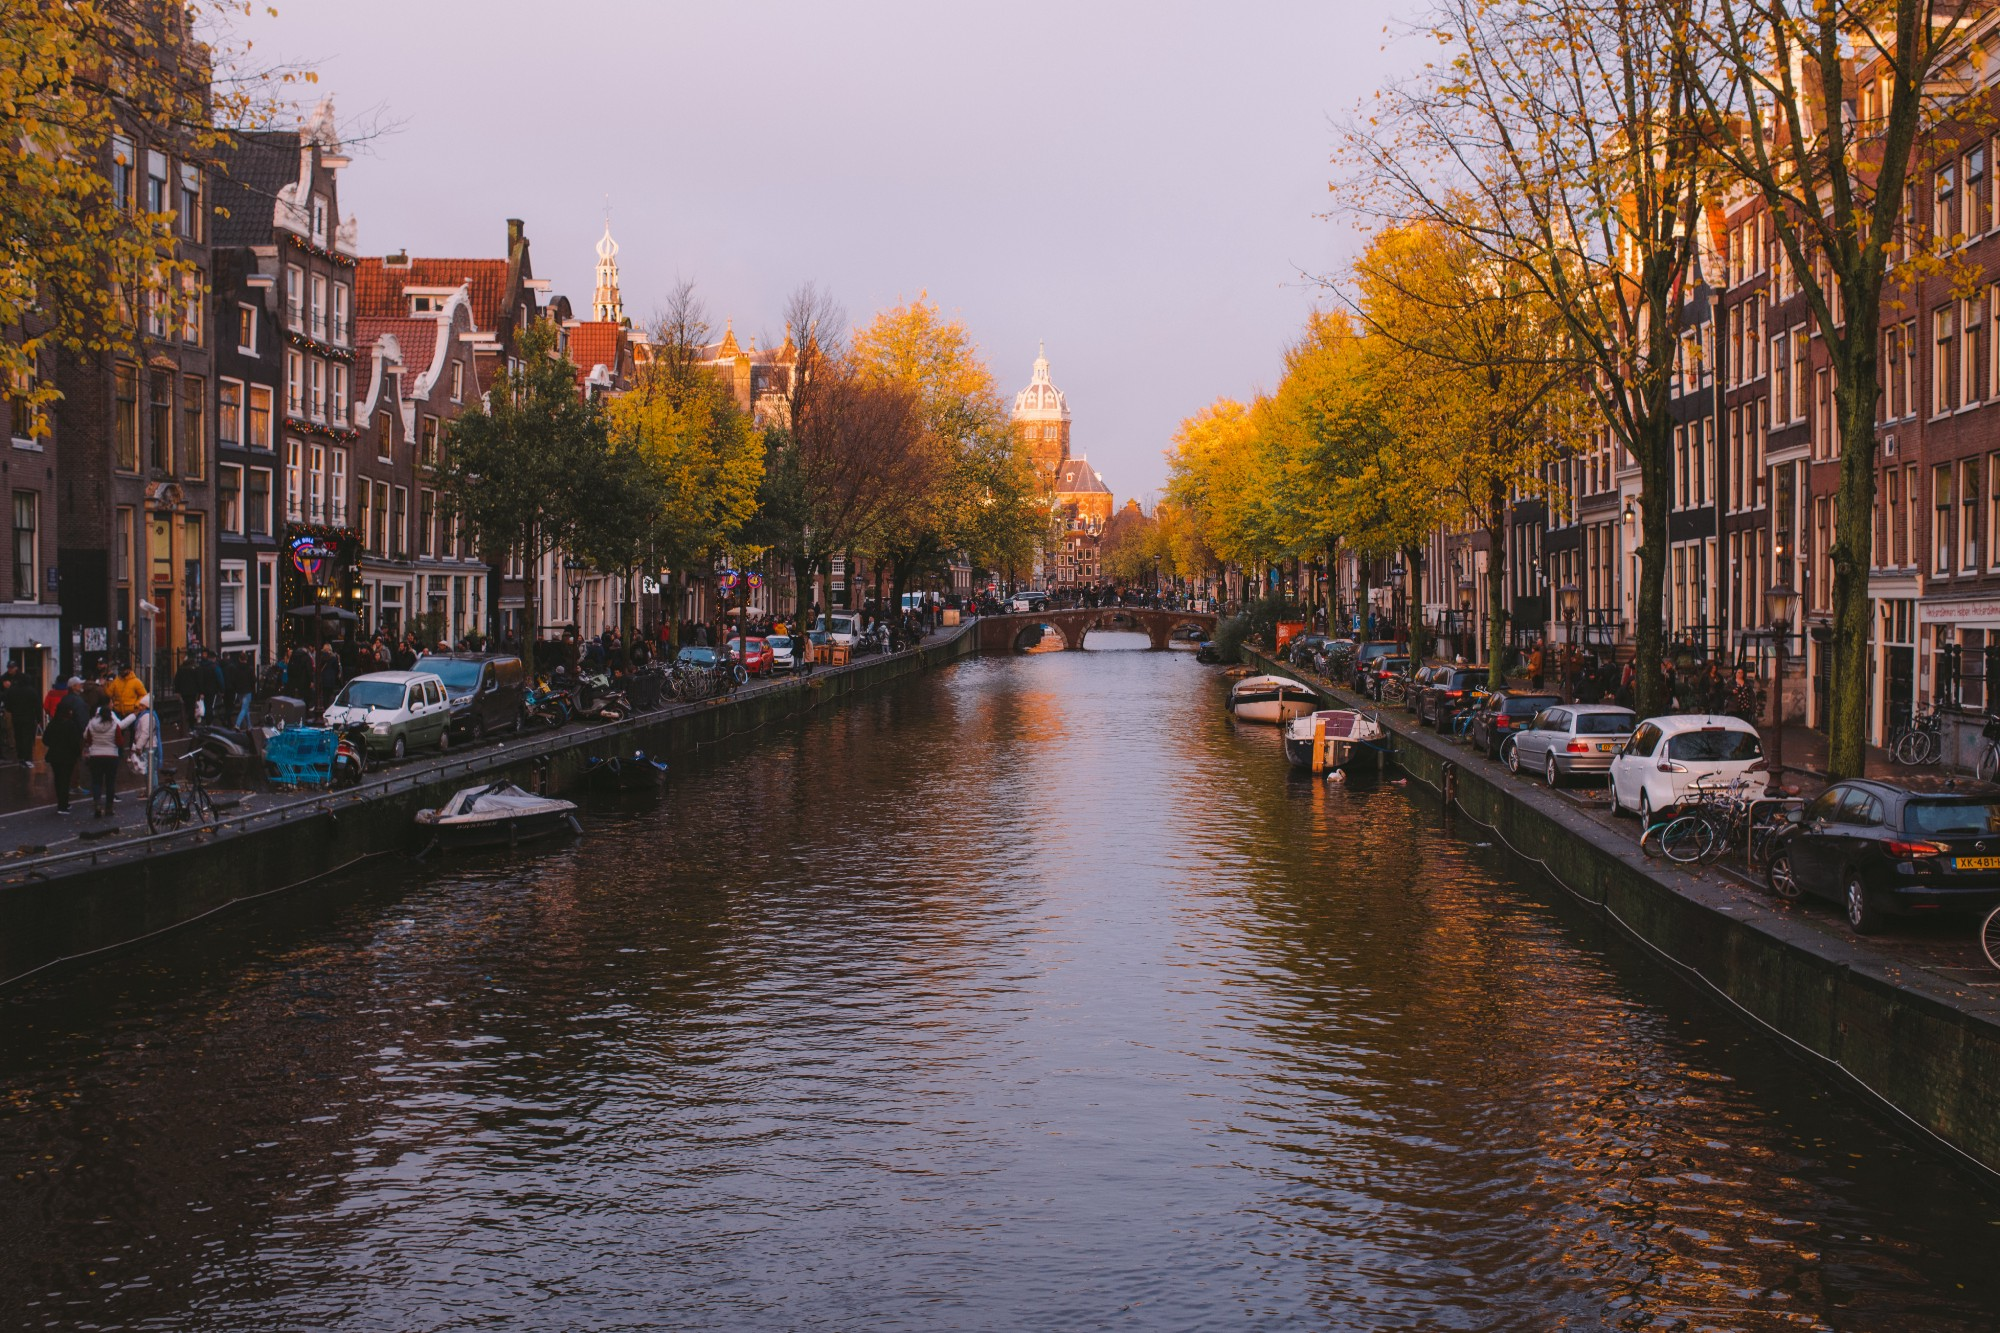 One of the many canals in Amsterdam lined with cars, gabled houses, and trees